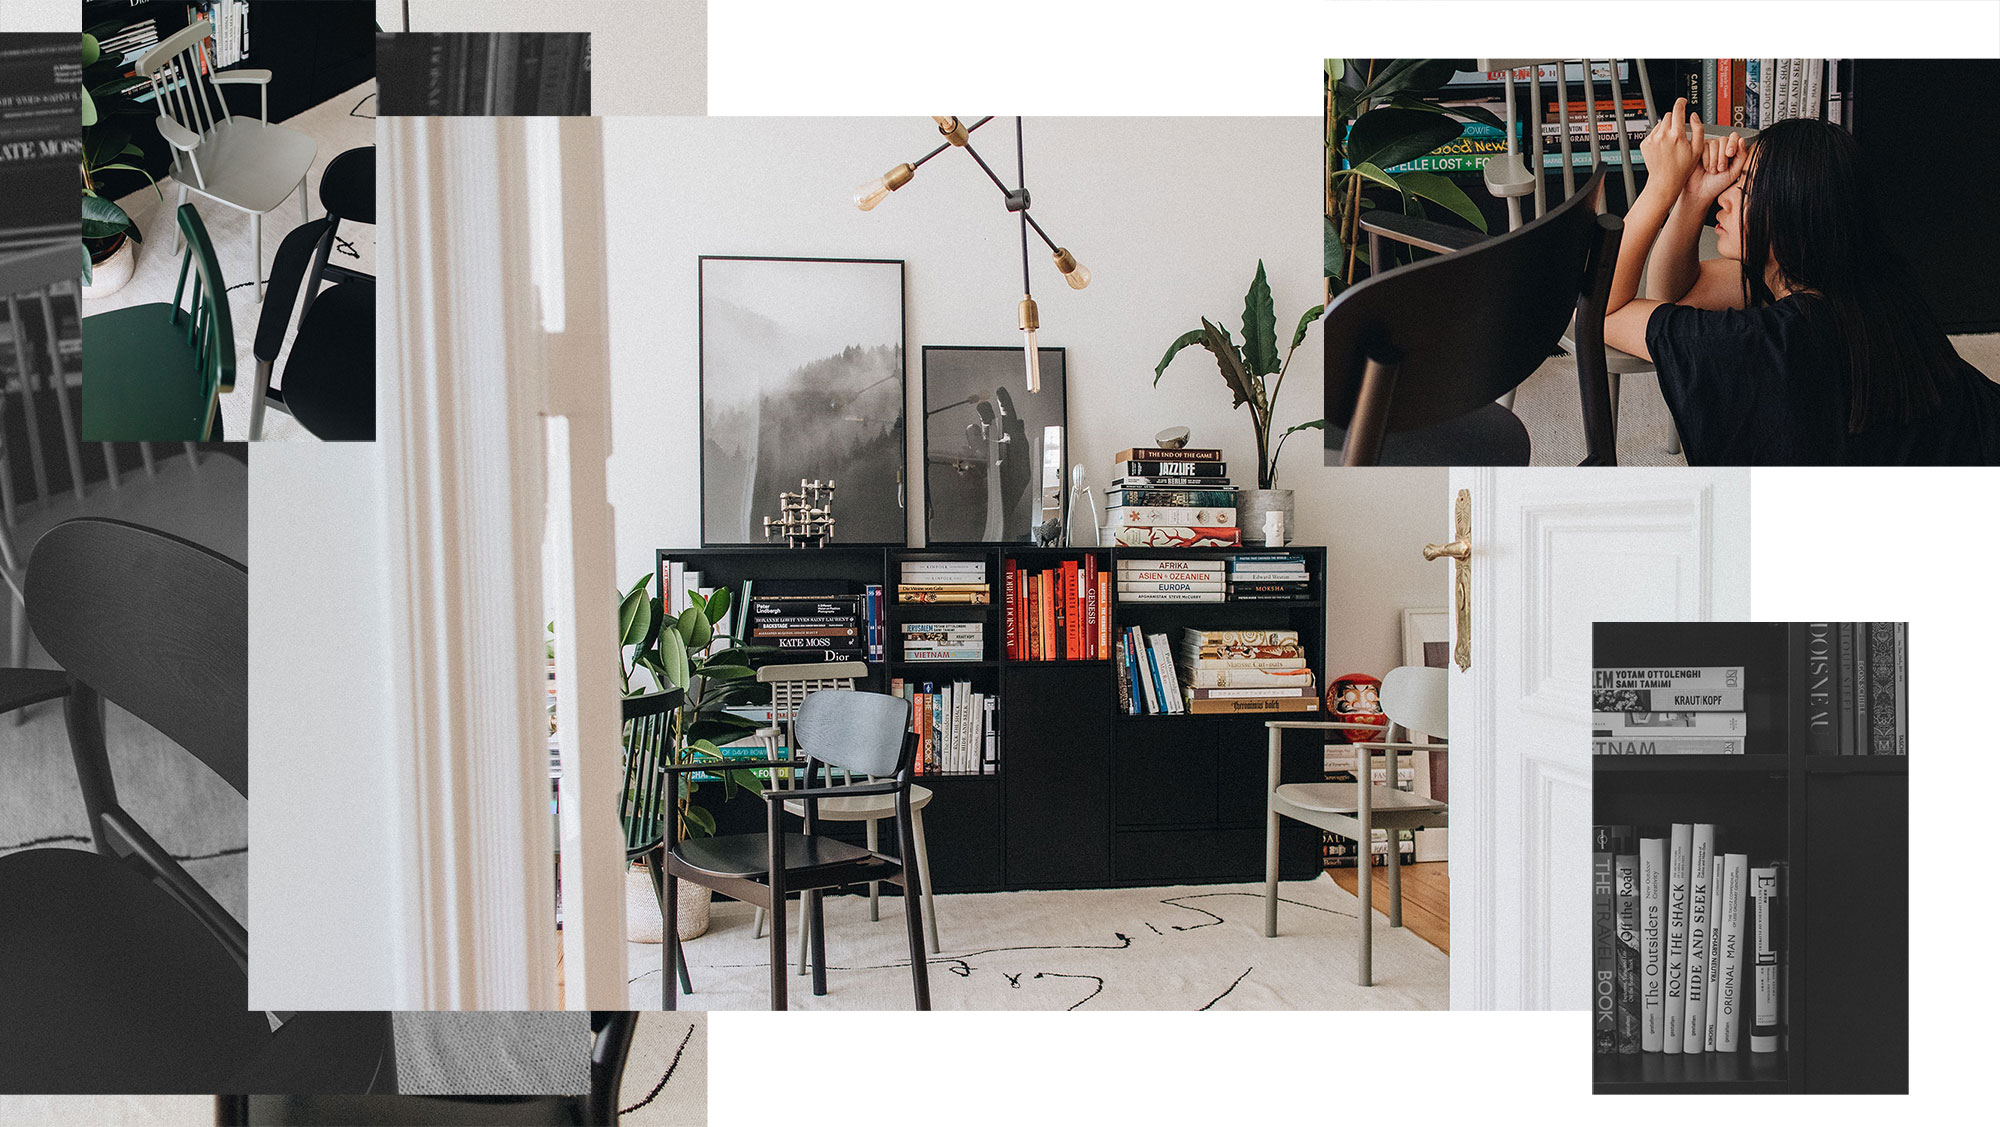 Bookshelf Inspiration mit MYCS Regalsystem / Interior Homestory by Alice M. Huynh / iHeartAlice.com - Travel, Lifestyle & Fashionblog